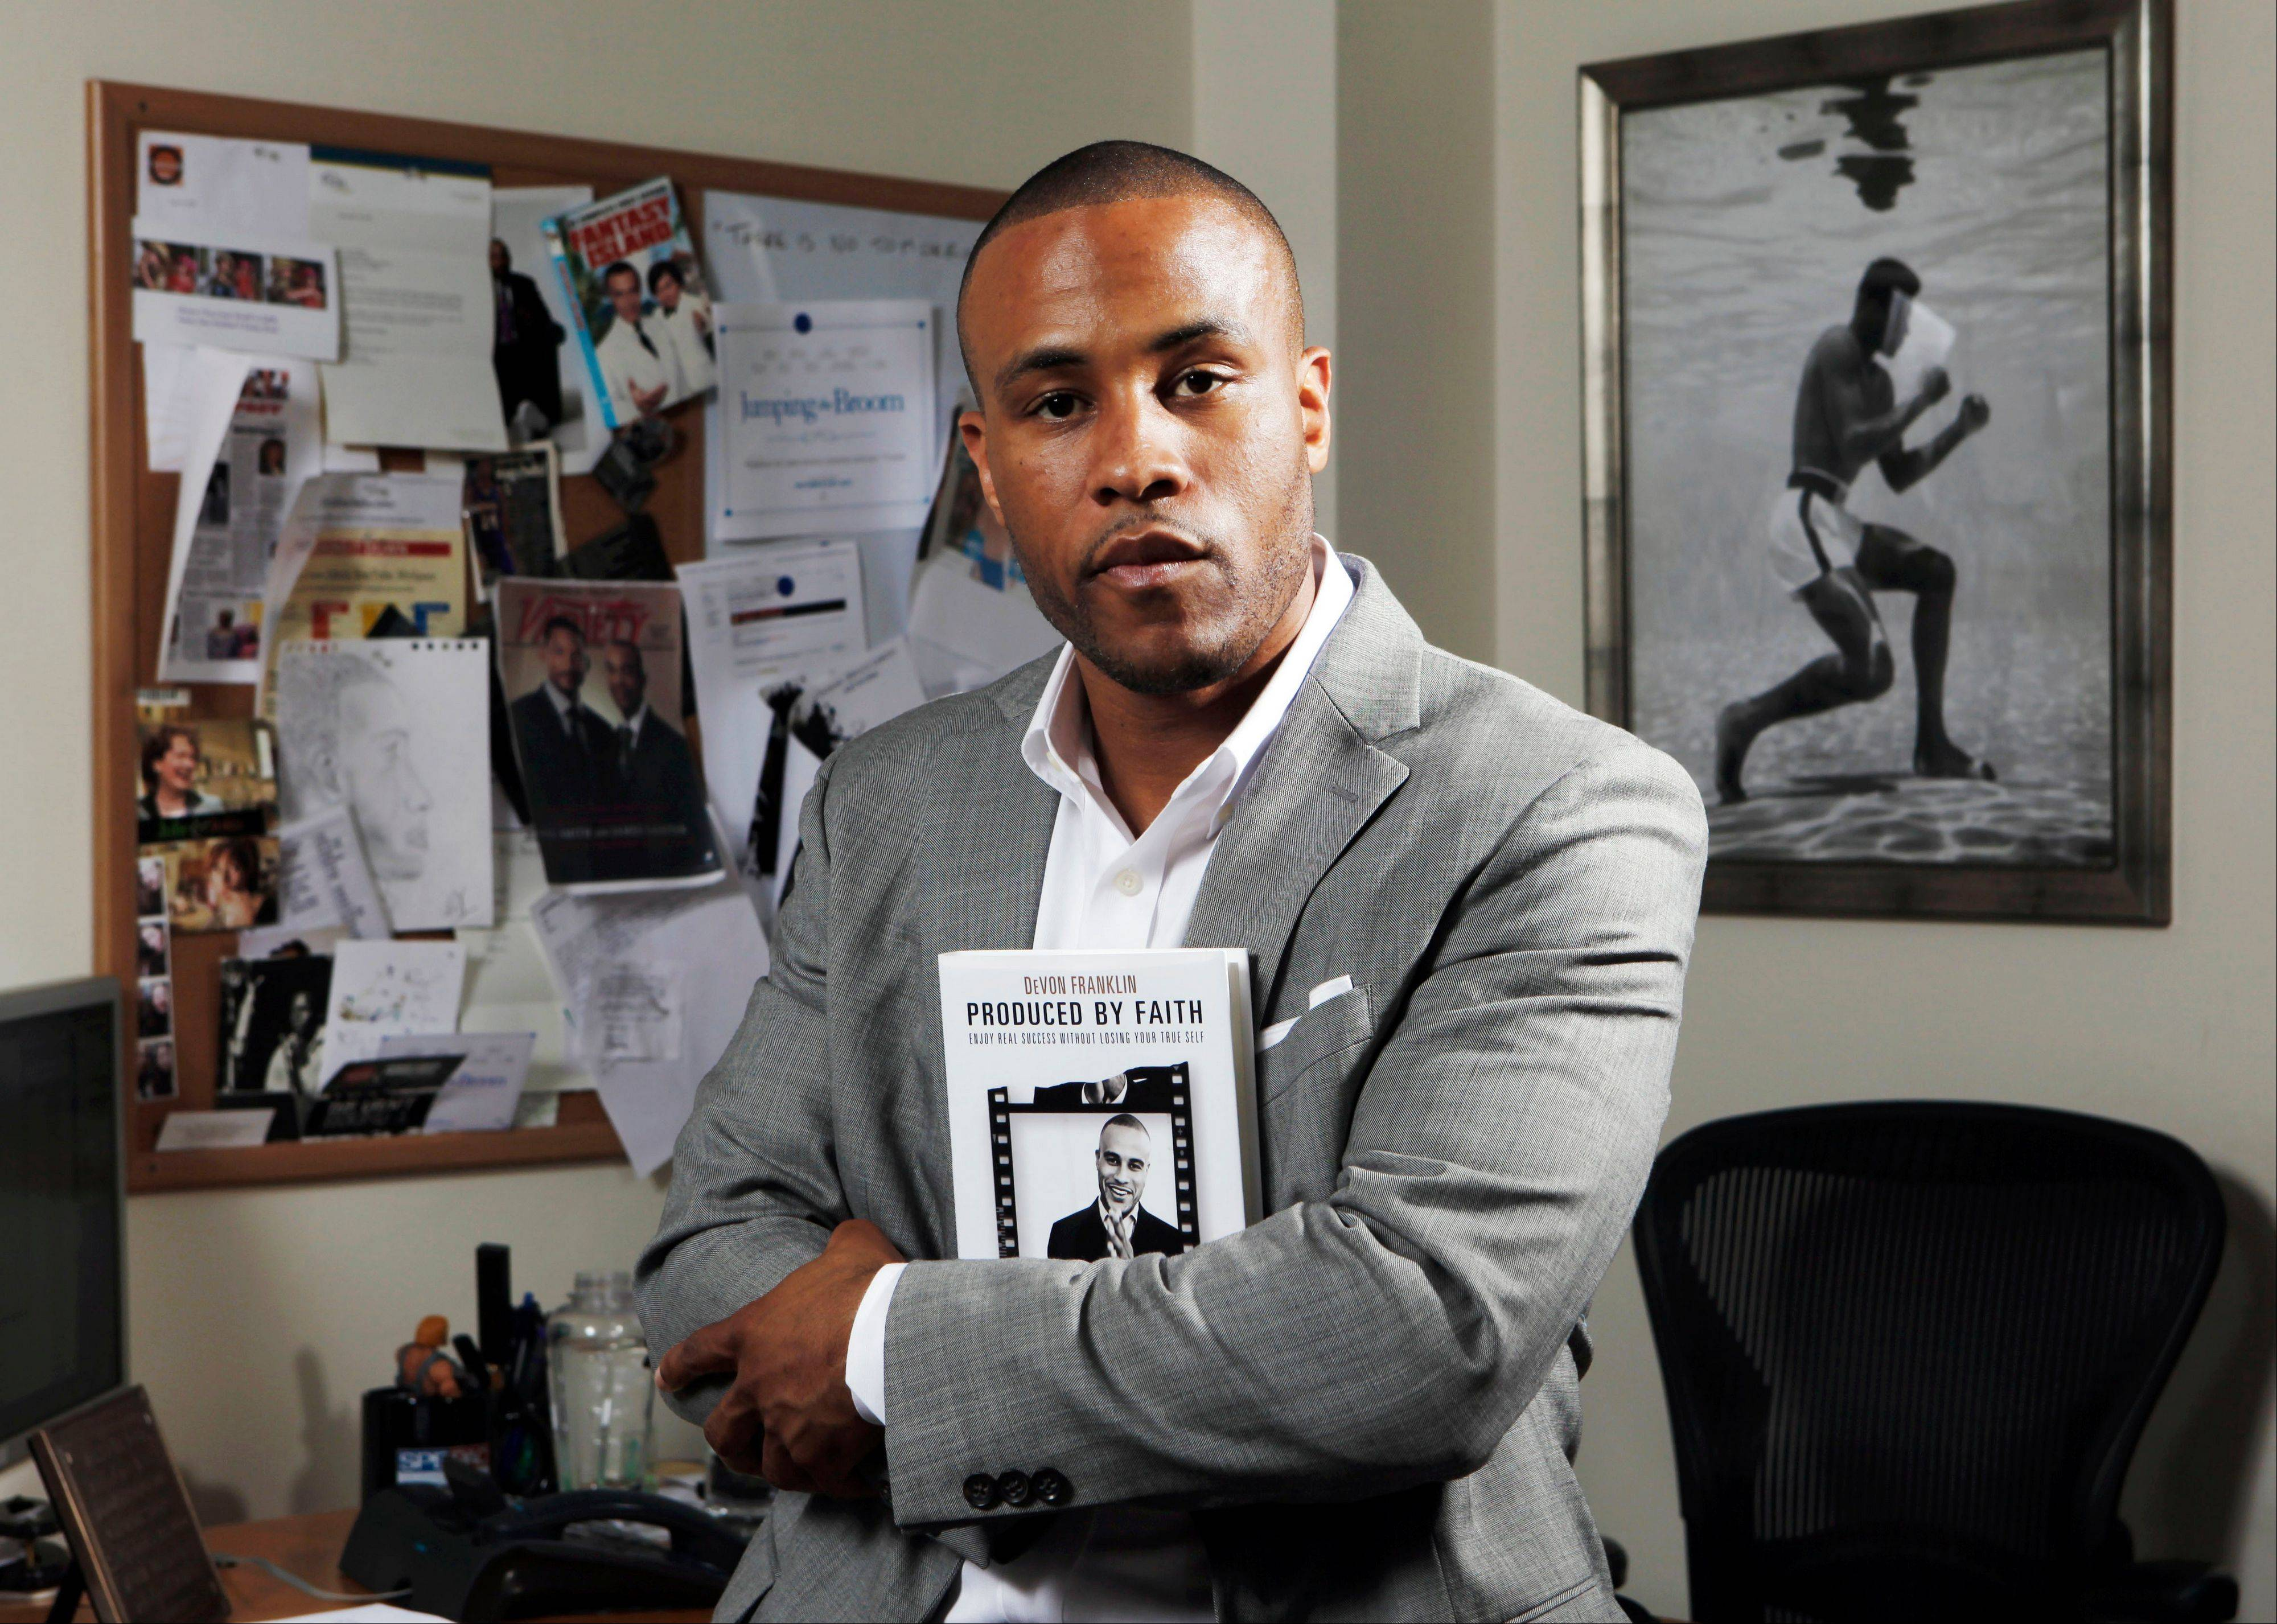 DeVon Franklin, Sony vice president of production and author of �Produced by Faith: Enjoy Real Success without Losing Your True Self,� poses in his office at Sony Pictures Entertainment in Culver City, Calif.. Producers of faith-based movies have a message for Hollywood studios: Make the movies and customers will pay to watch them.